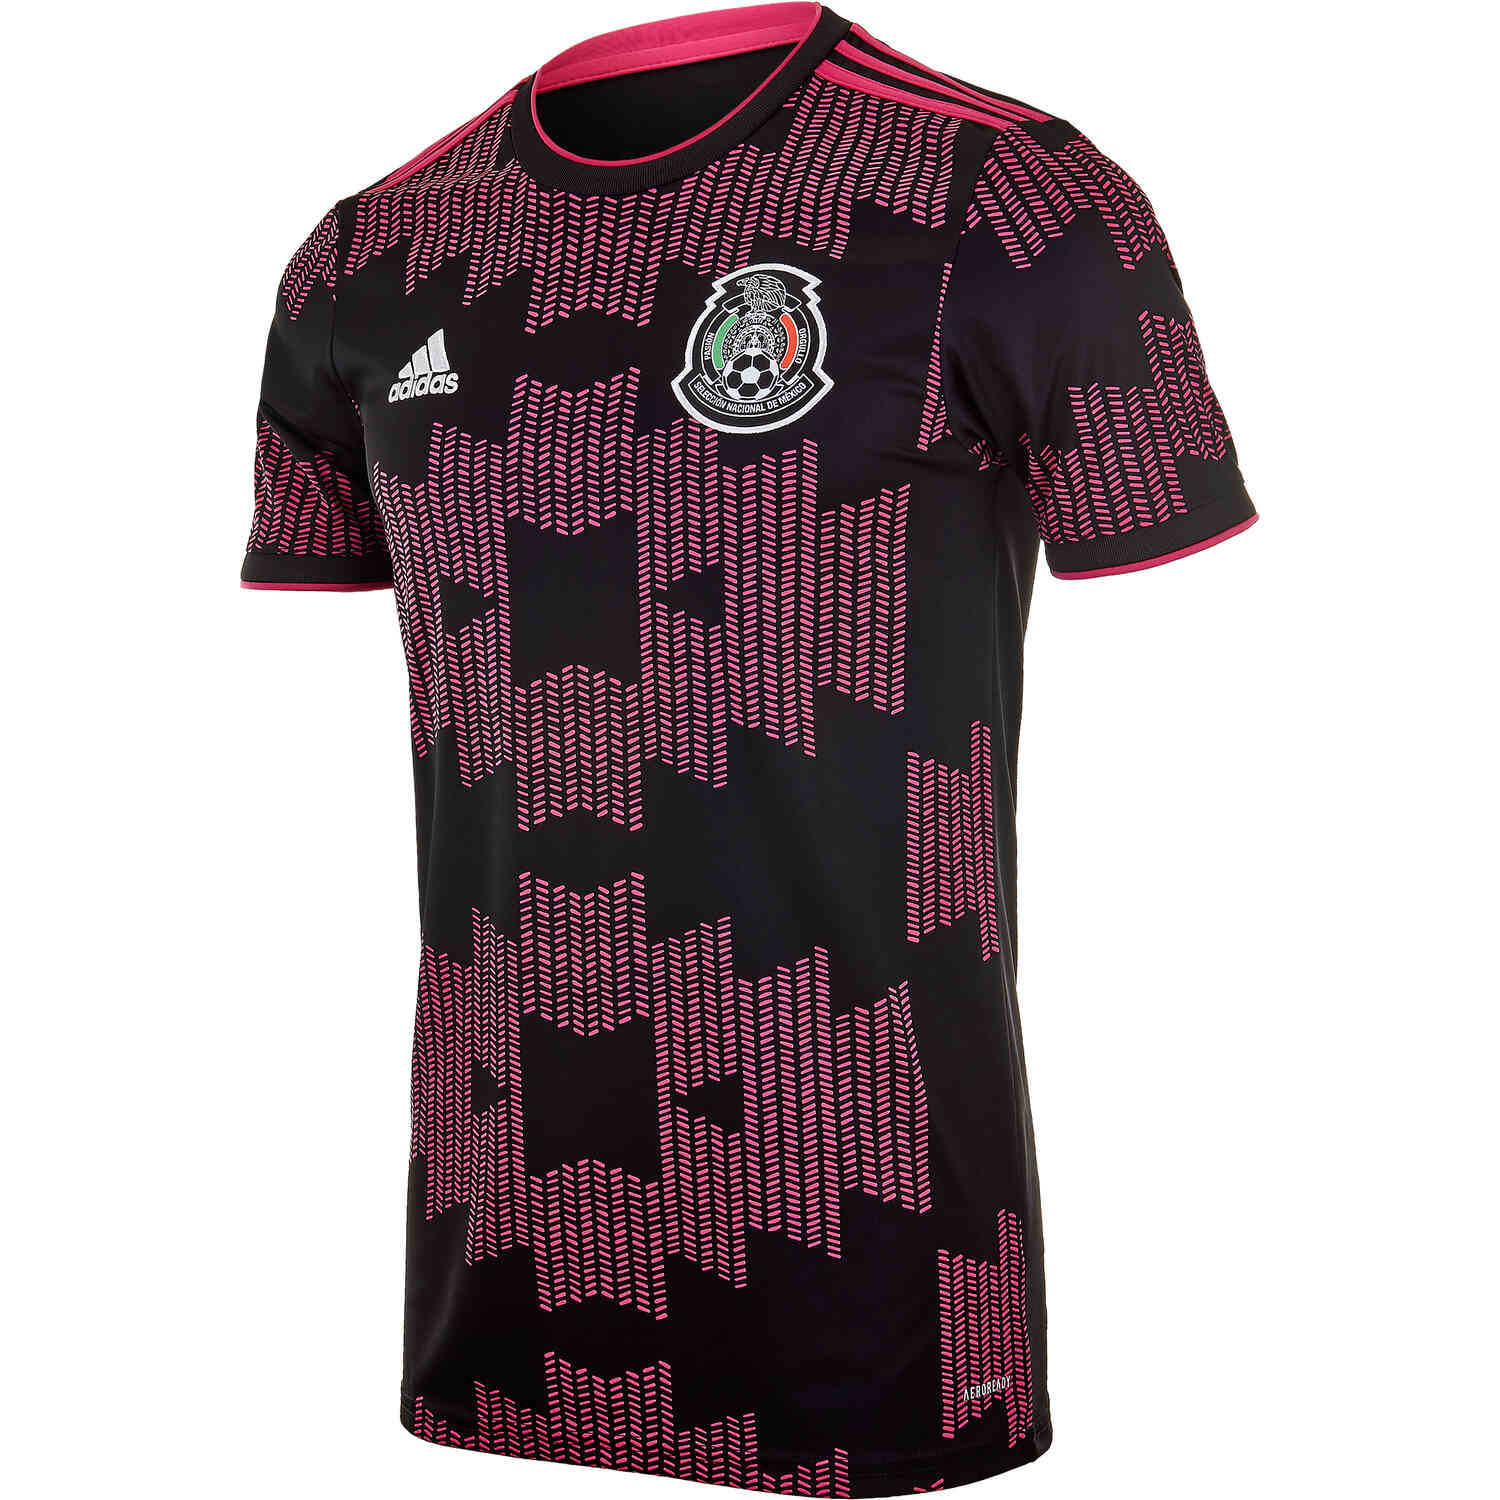 2021/22 Kids adidas Mexico Home Jersey - Soccer Master